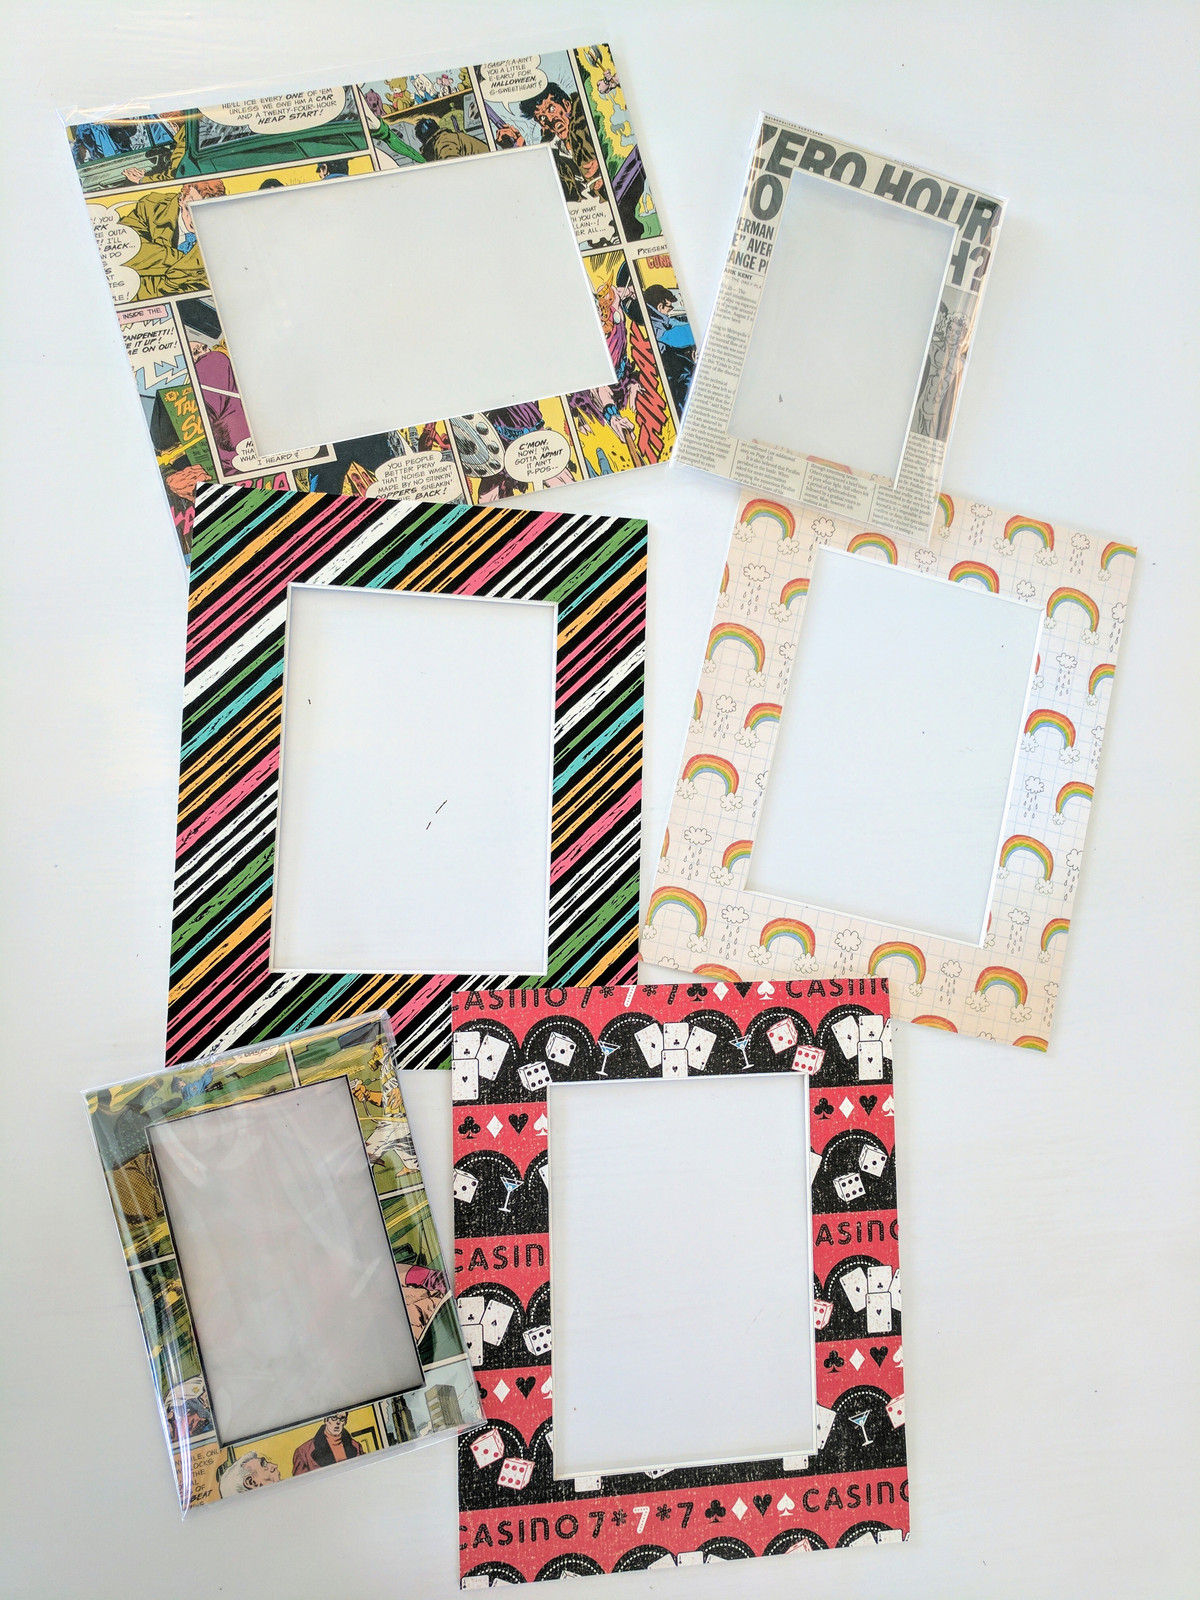 craig image core frame for mat matting itm picture frames cream opening